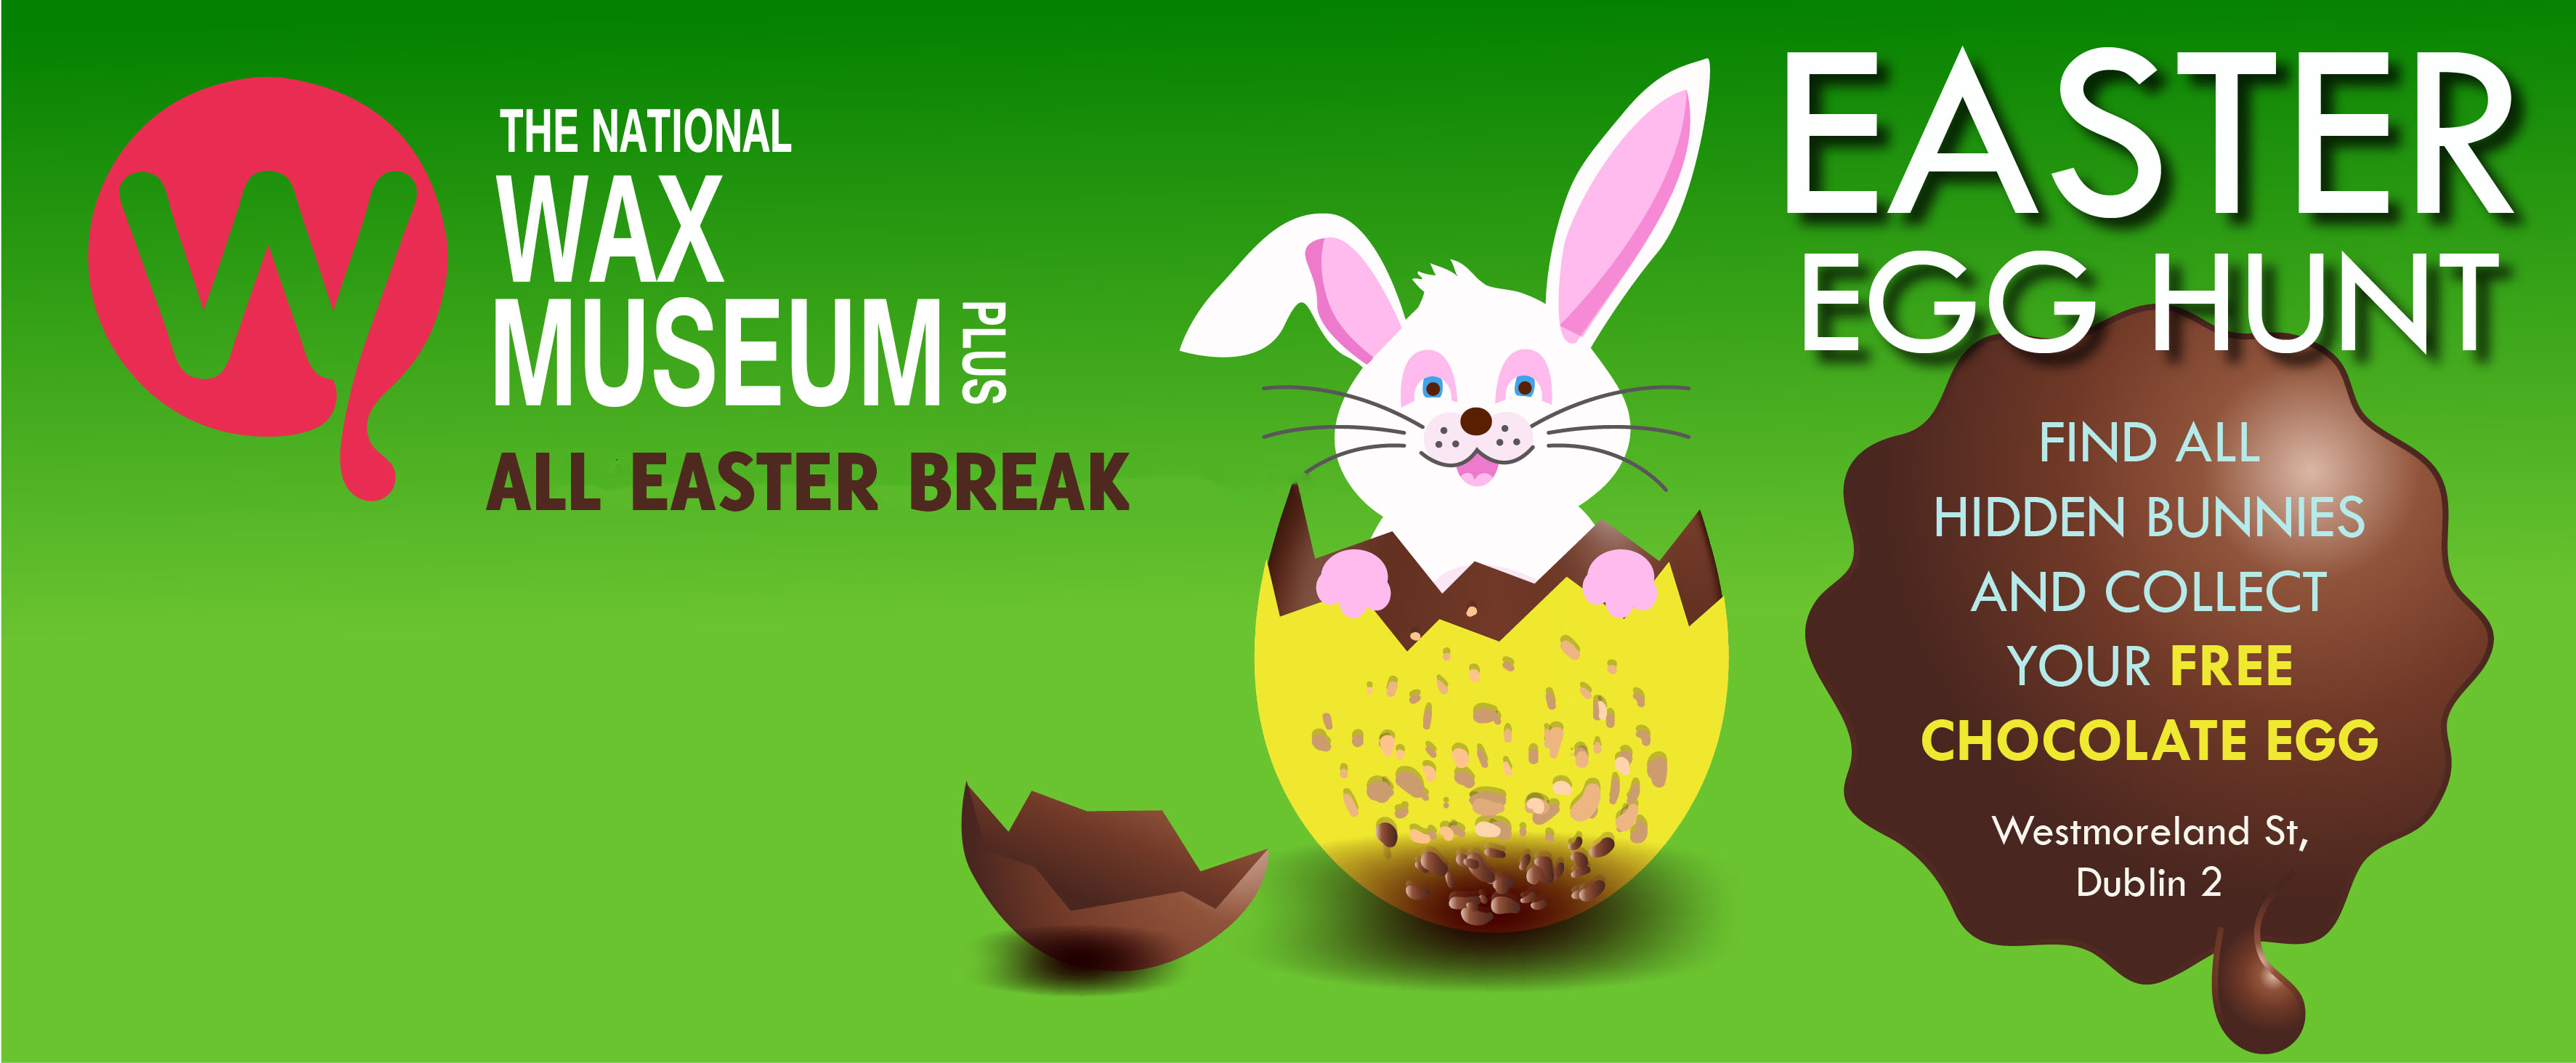 National Wax Museum Easter Egg Hunt | Things to do in Dublin